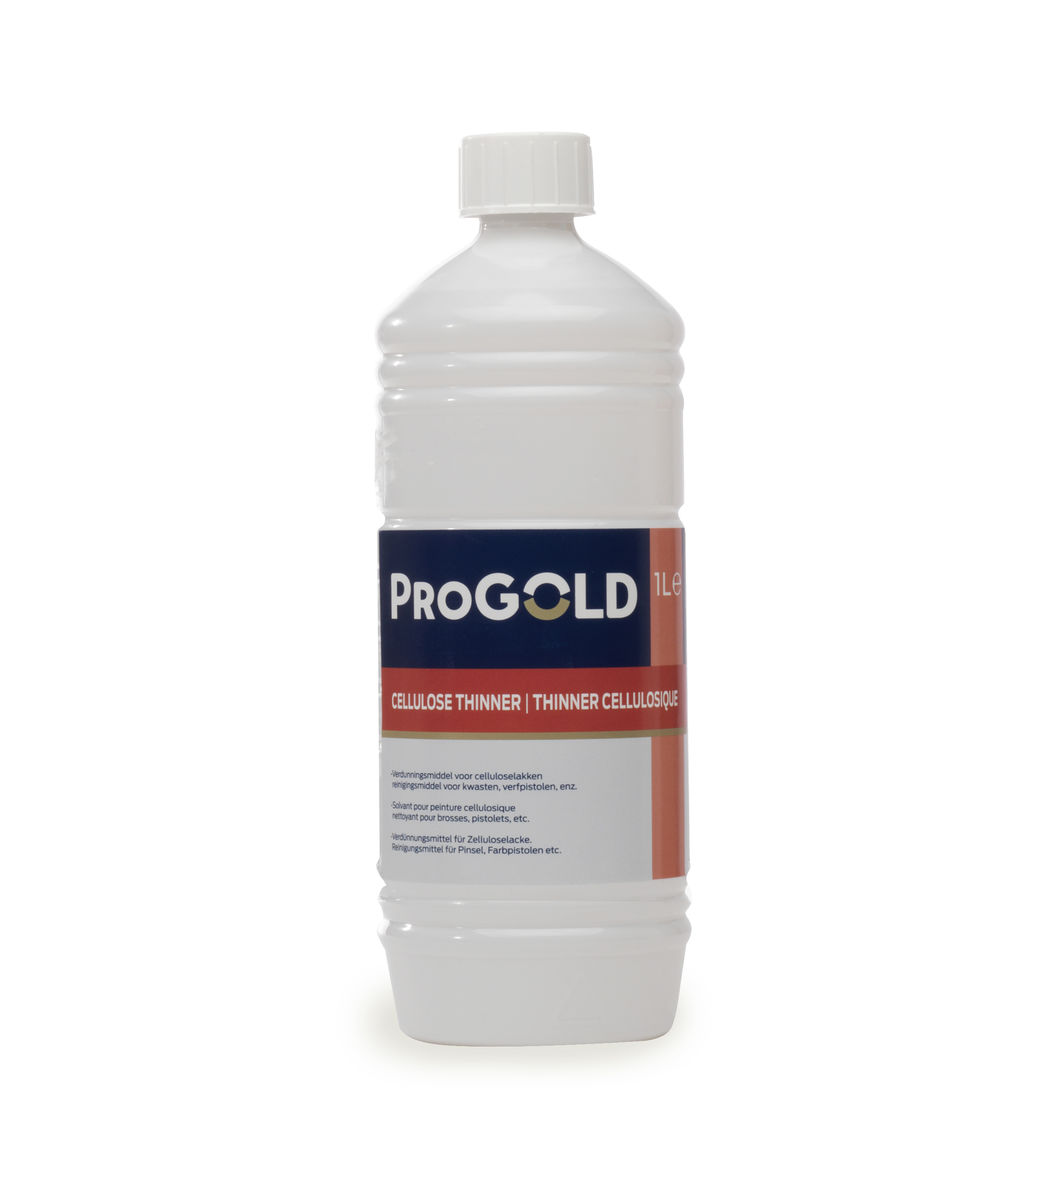 ProGold Thinner Cellulose